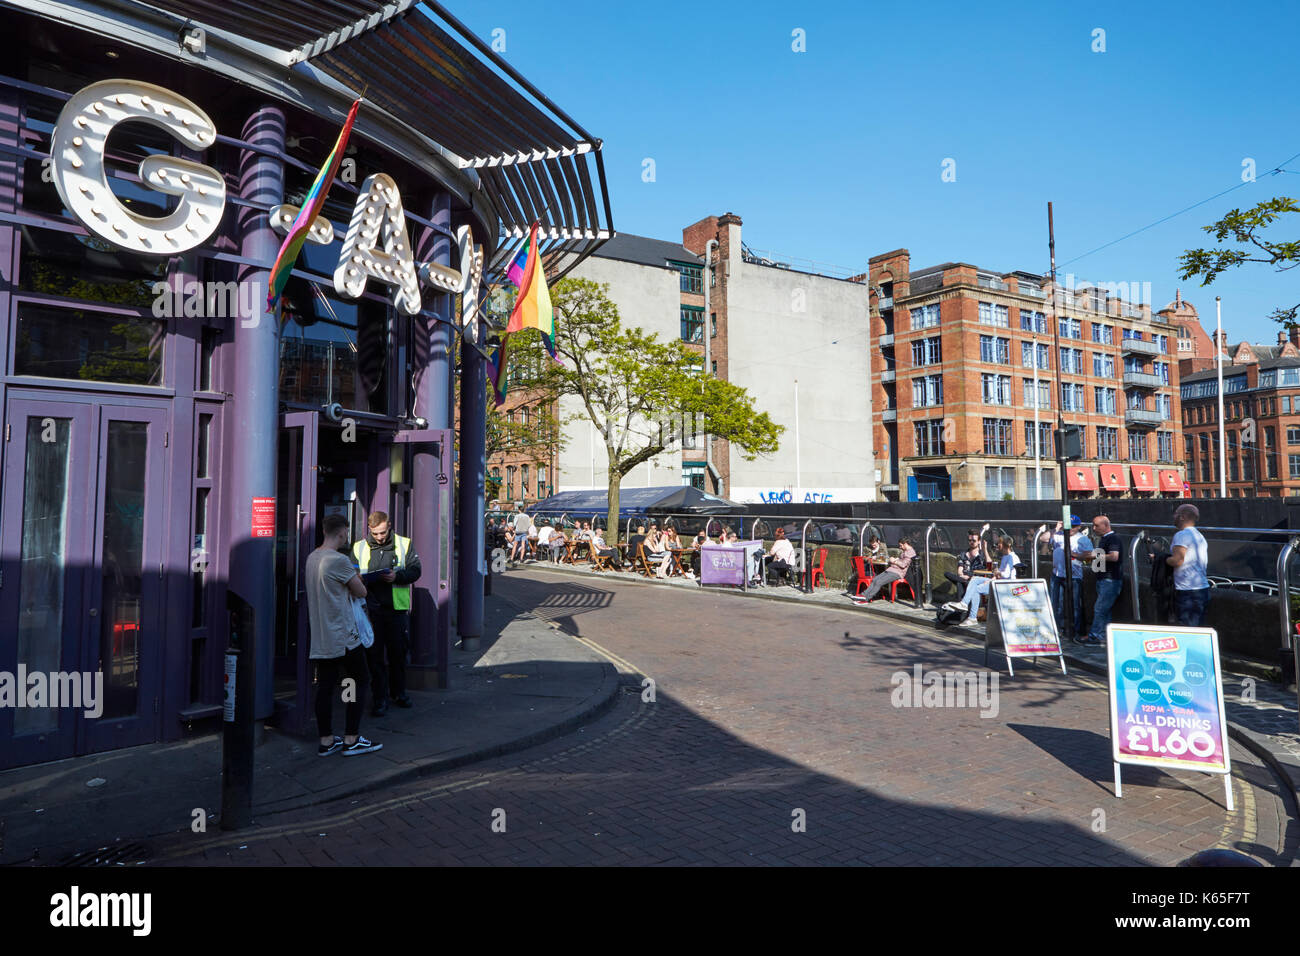 Manchester, UK - 10 May 2017: Exterior Of Buildings In Manchester's Gay Village - Stock Image